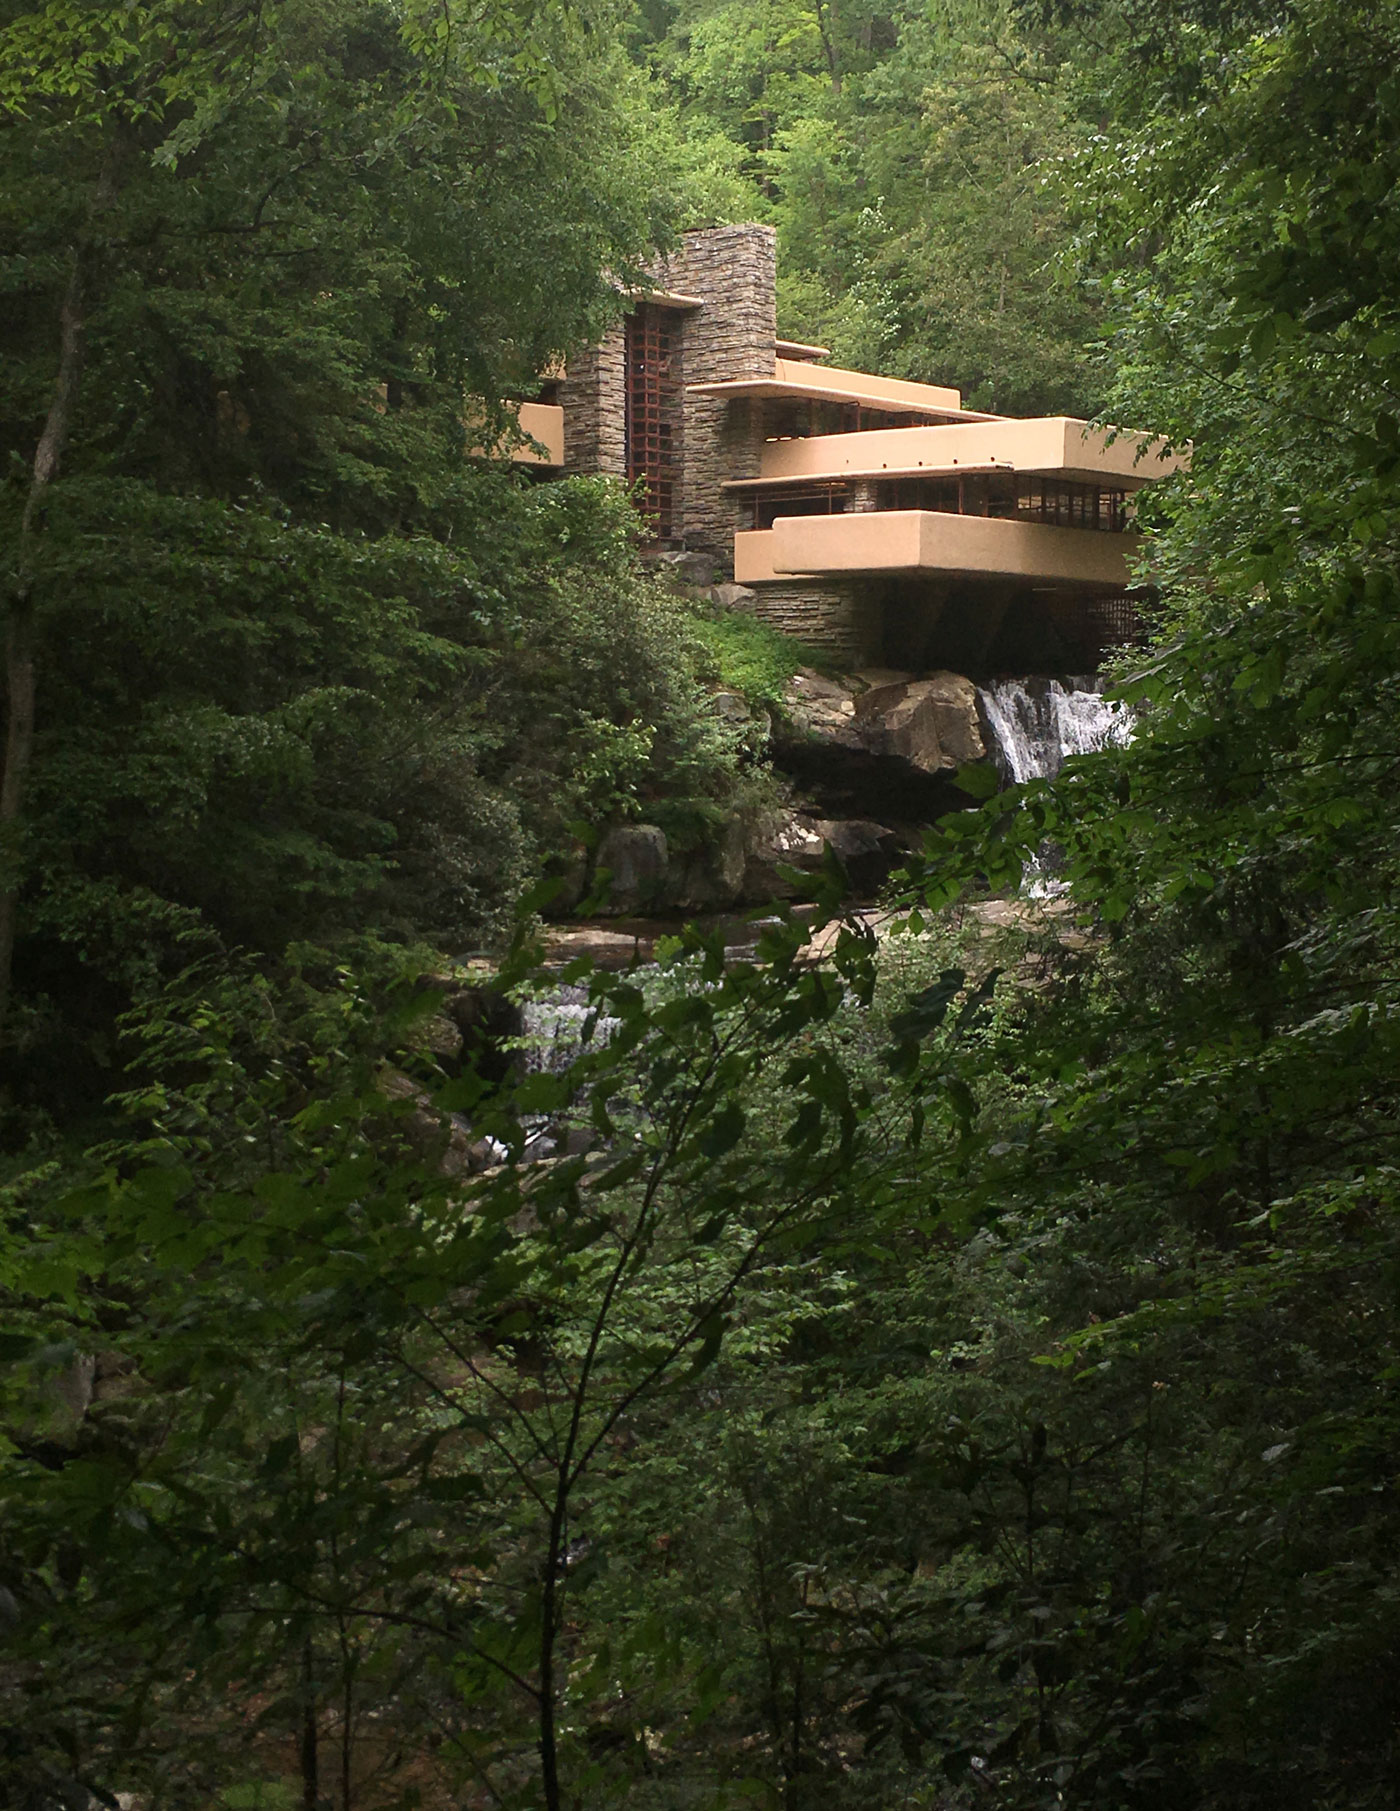 Fallingwater, the iconic view